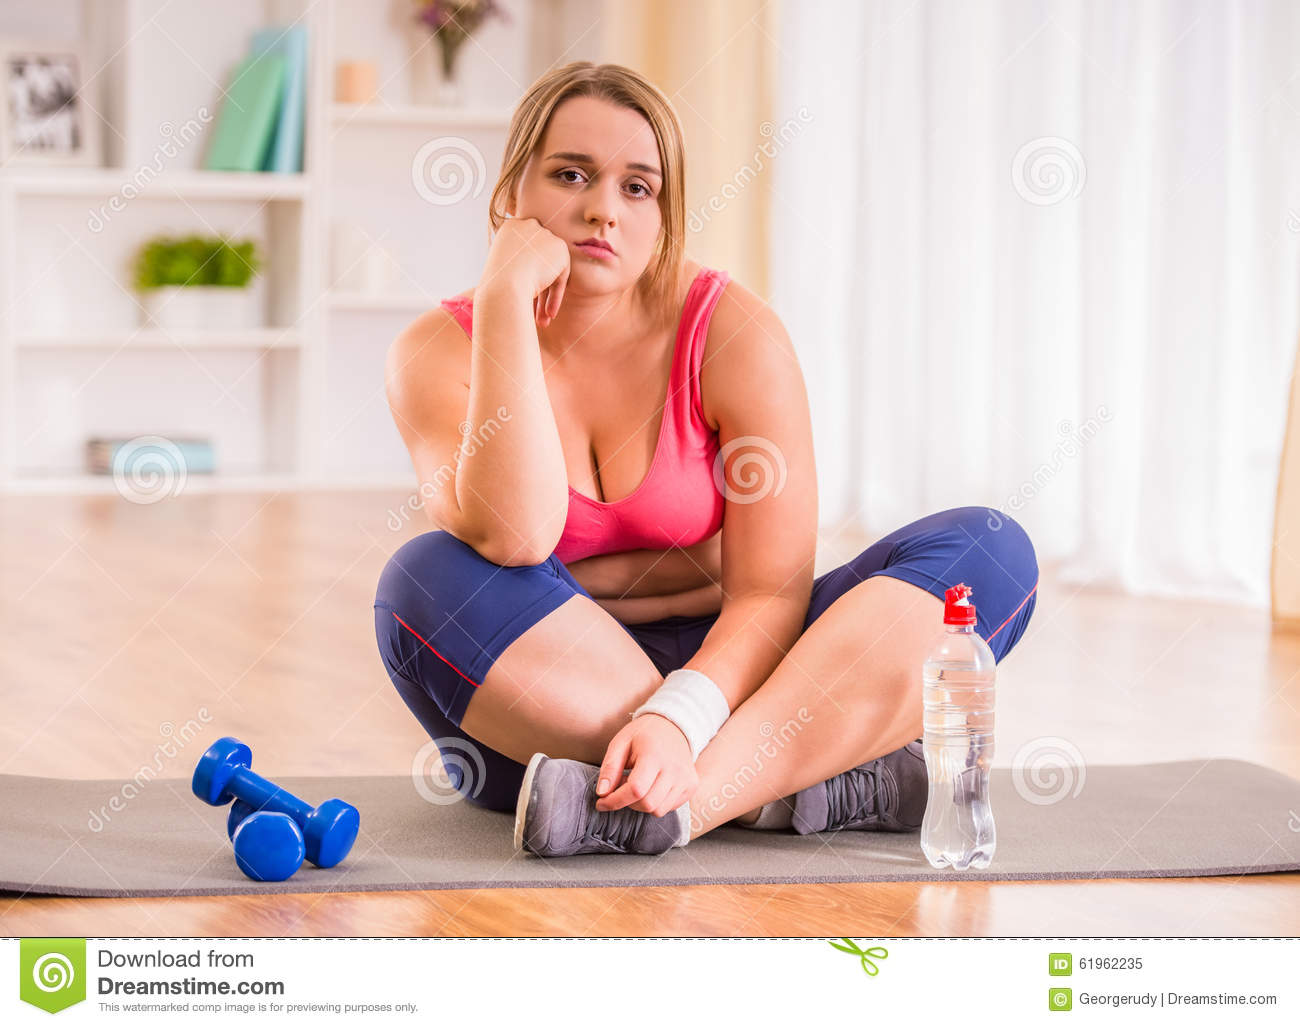 Fat Woman Dieting Stock Photo - Image: 61962235